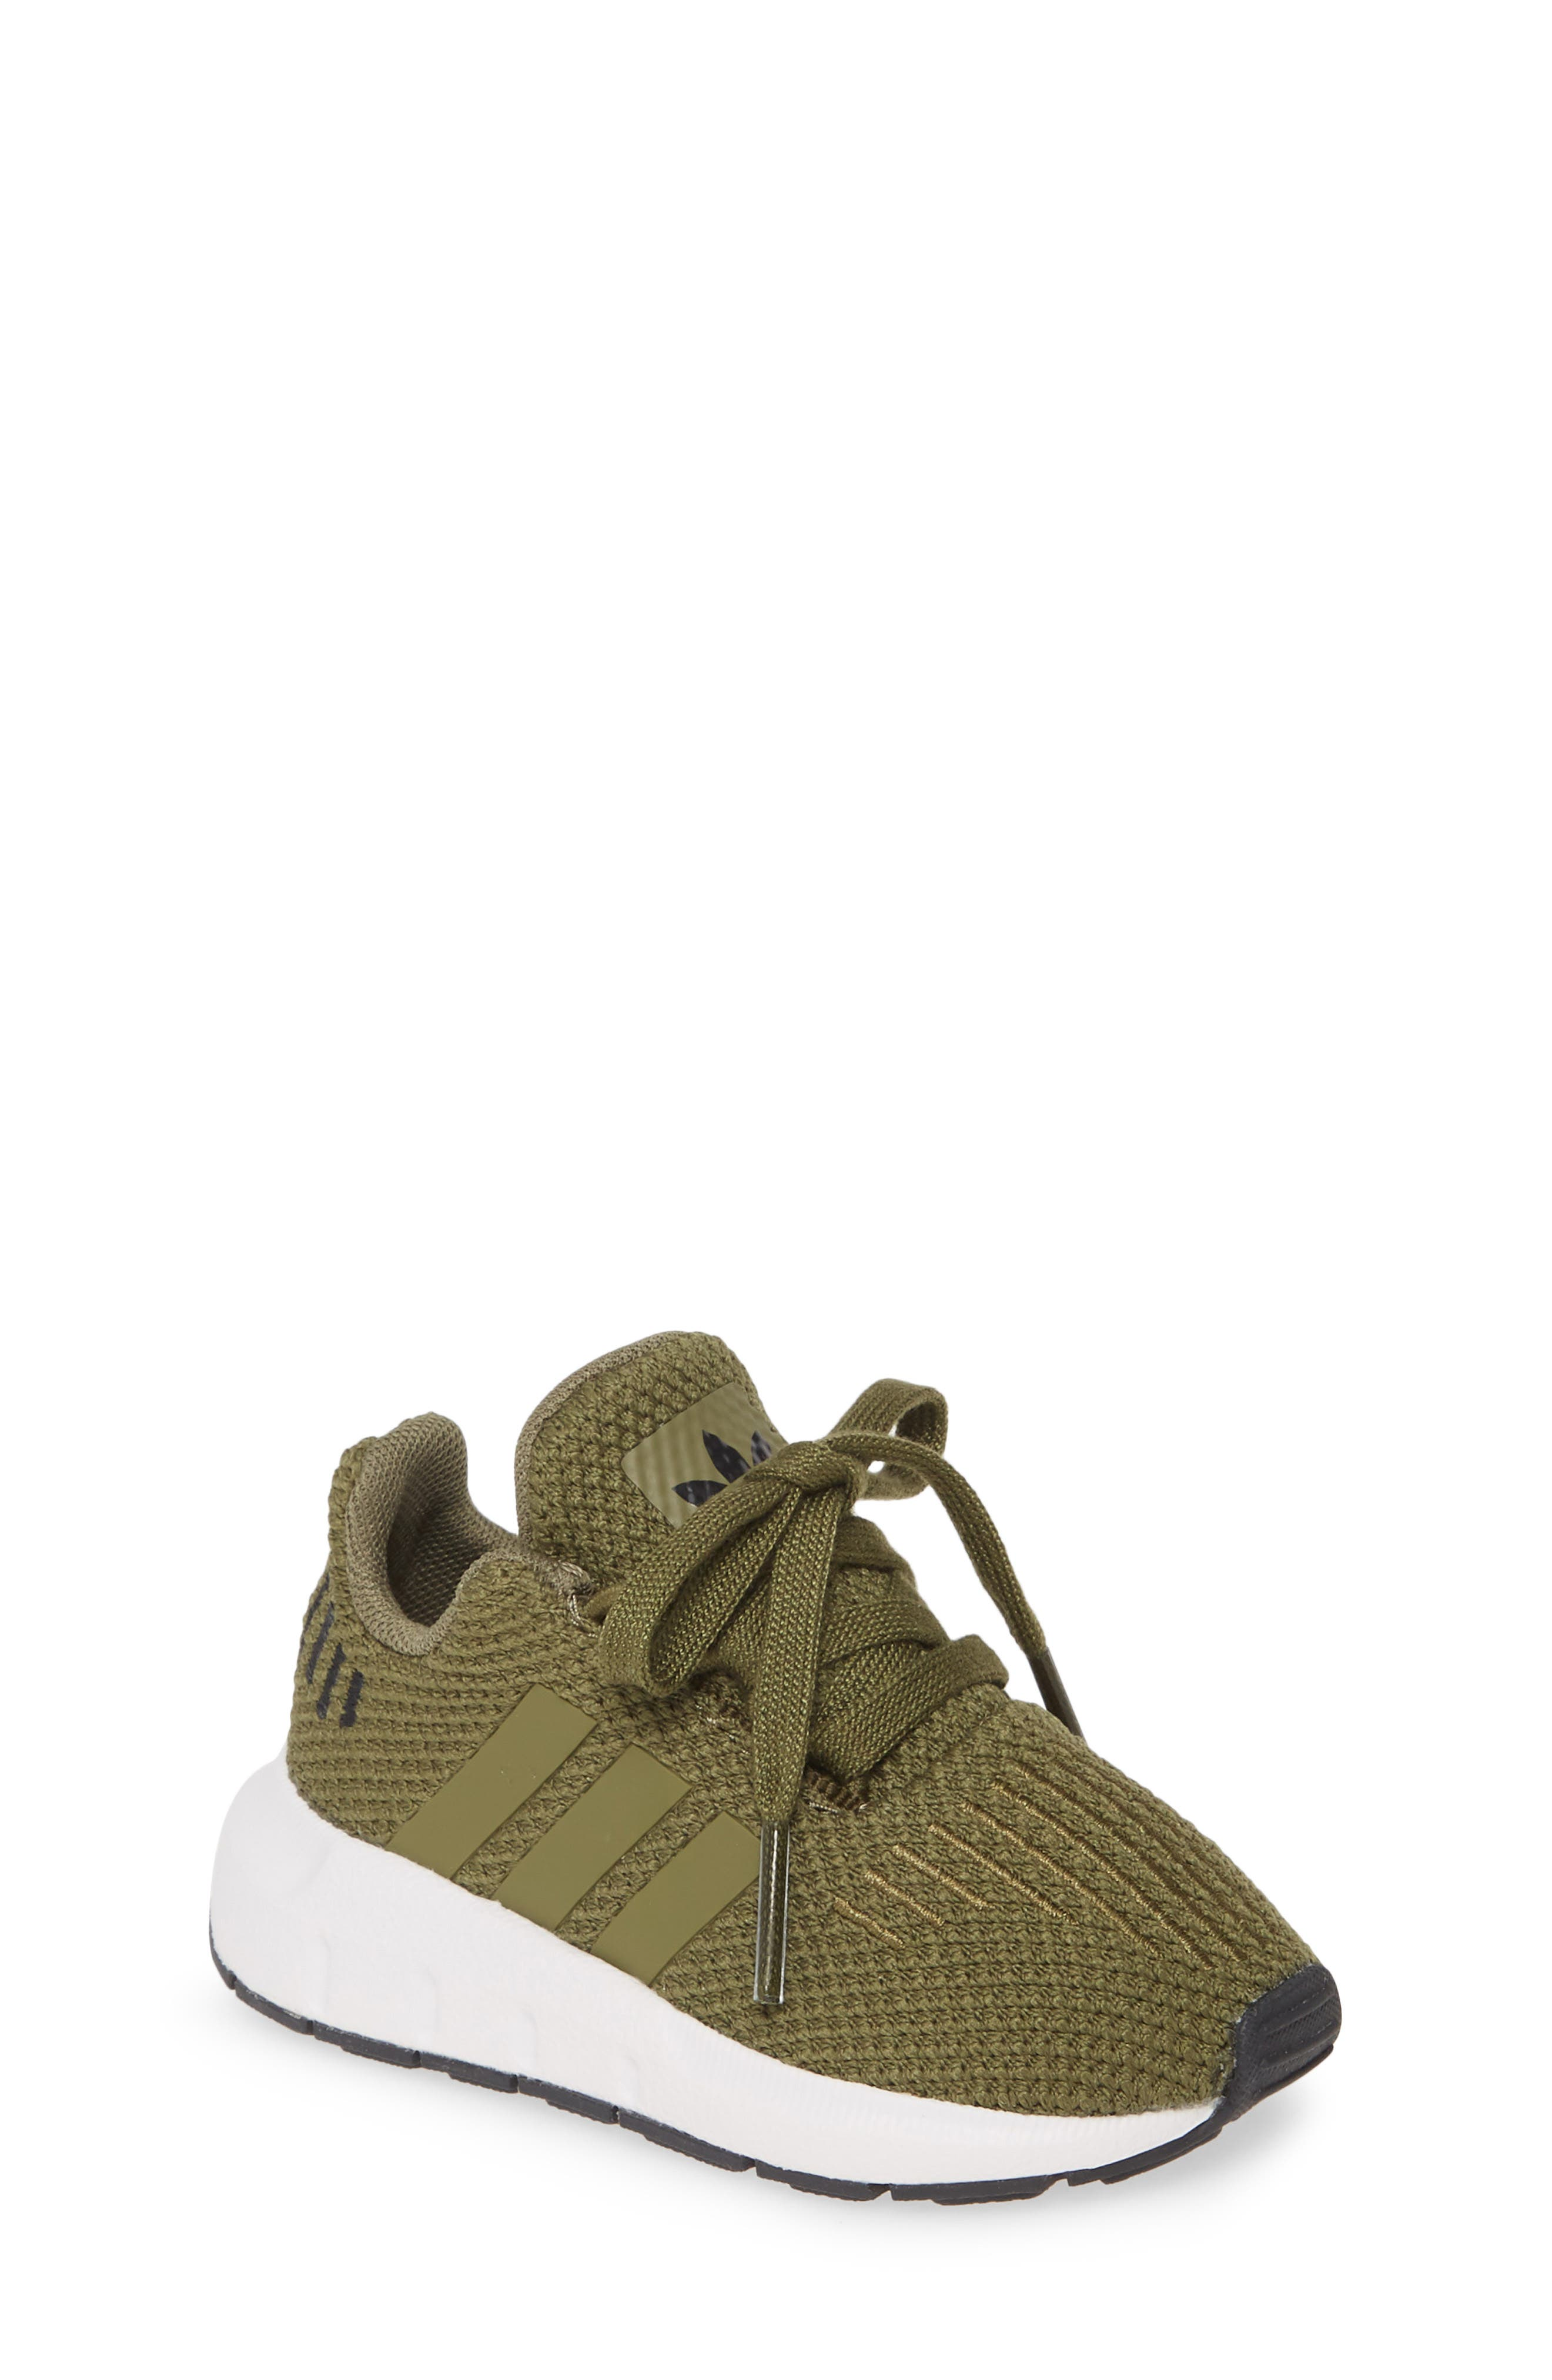 adidas Baby & Toddler | Shoes, Sneakers & Crib Shoes | adidas US